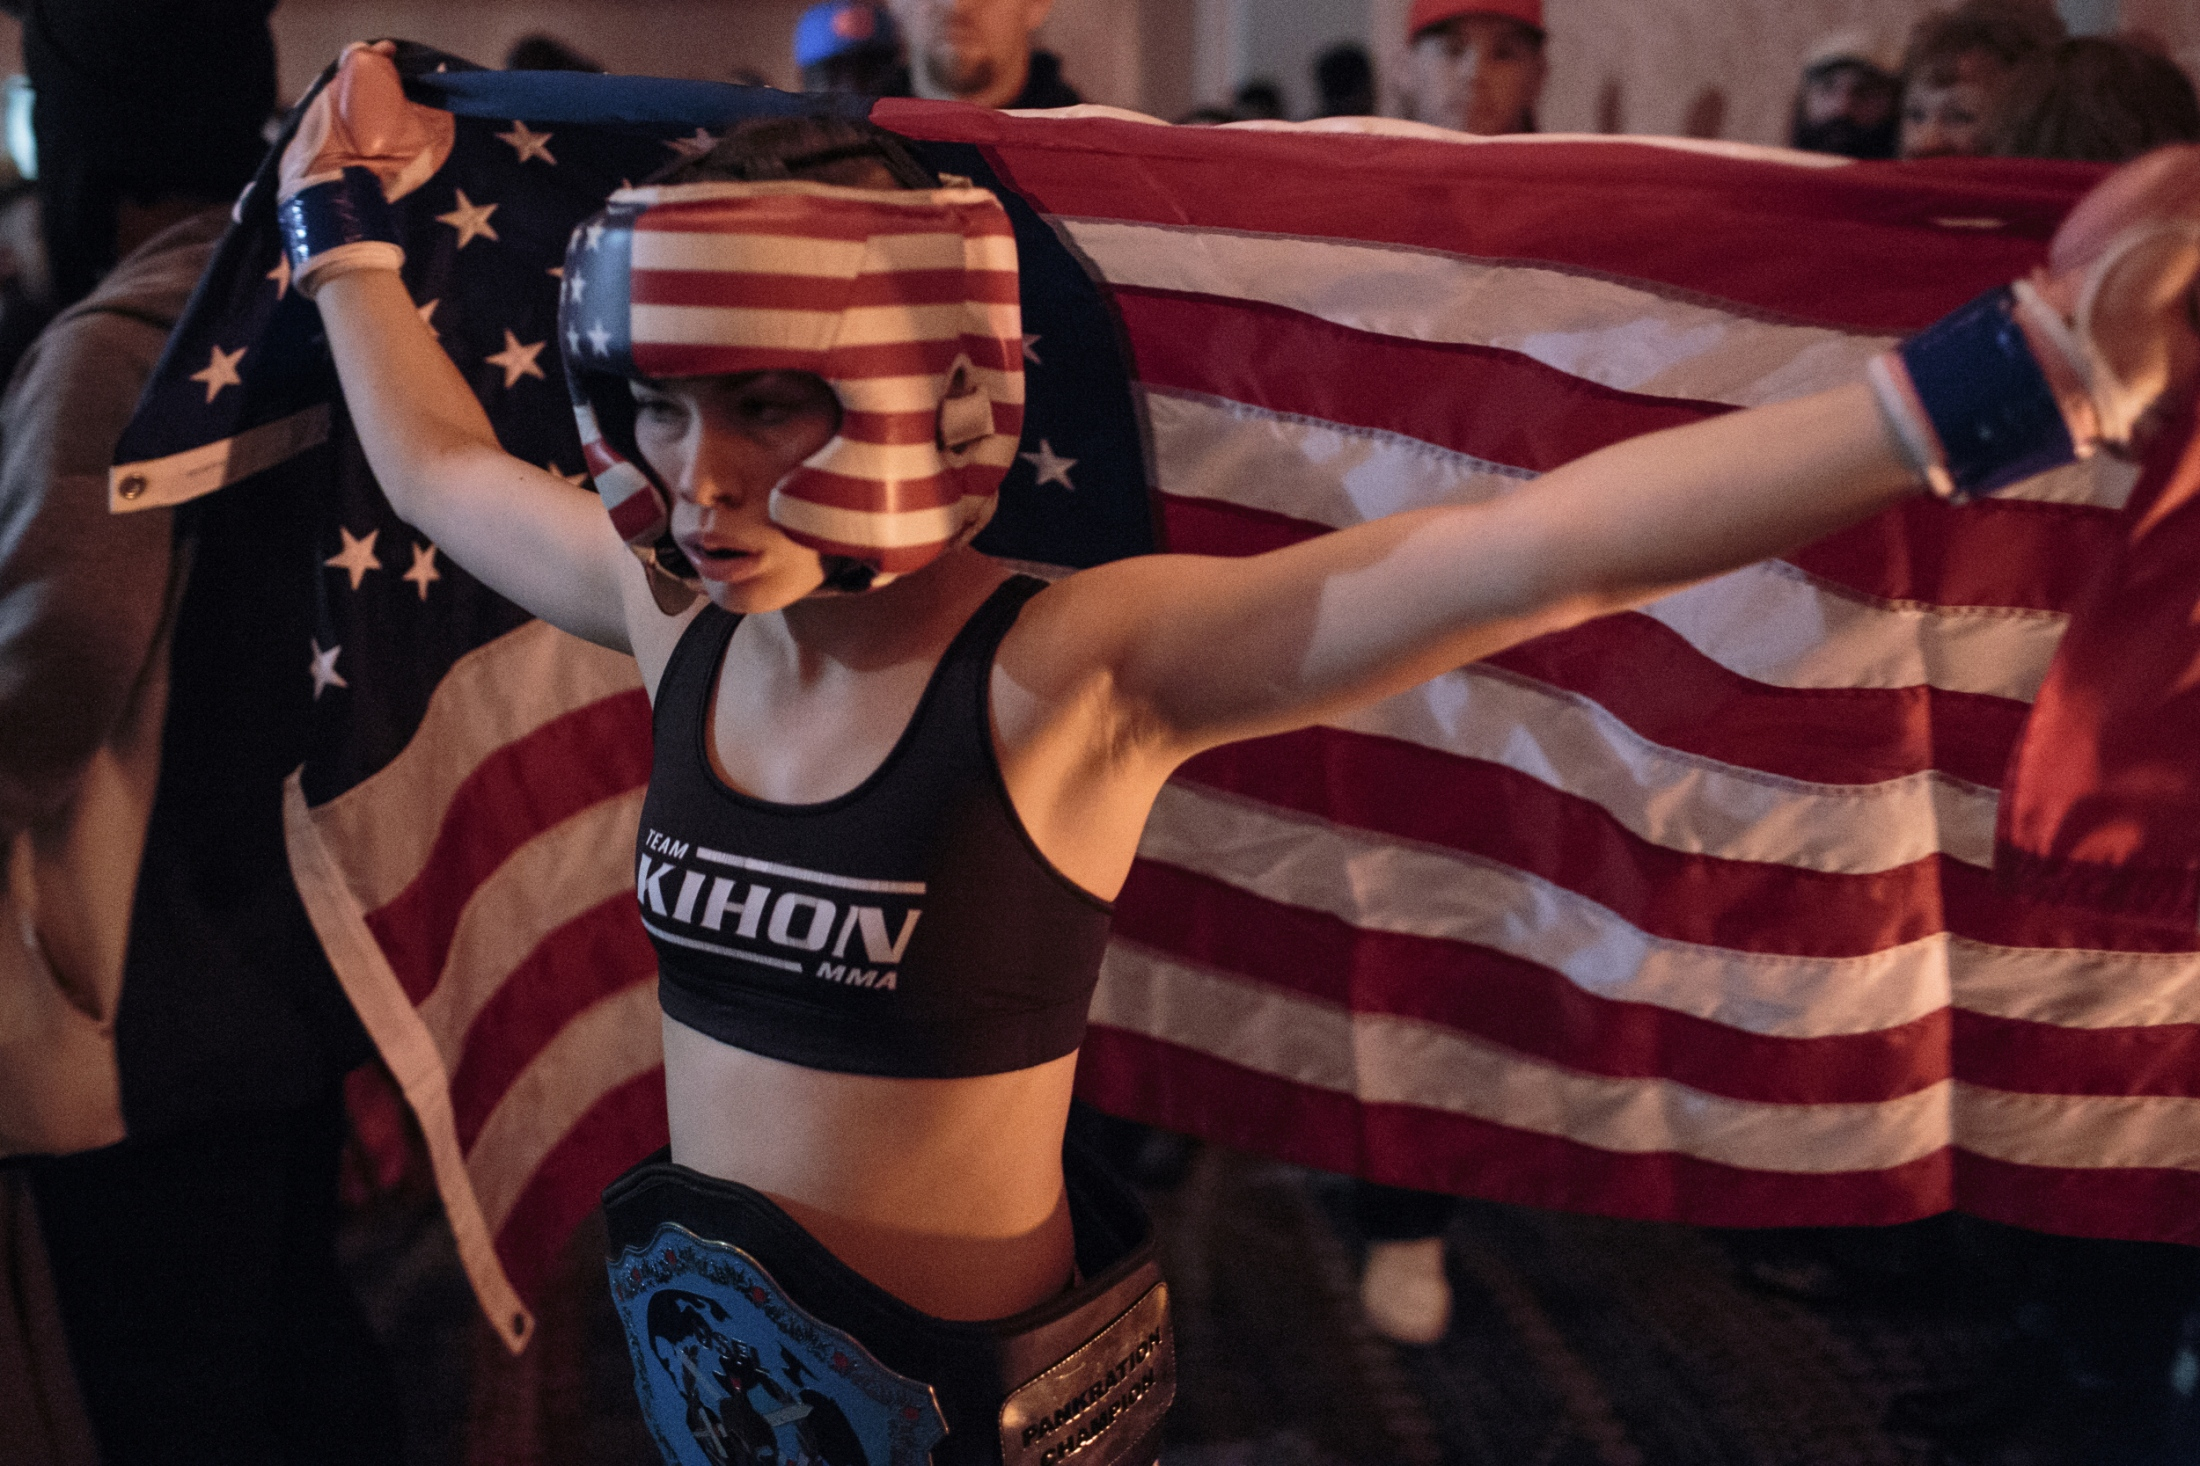 Shaniyah Carlson, 15, carries the American flag to the cage before her 13th official Youth MMA fight during the U.S. Open Youth National.